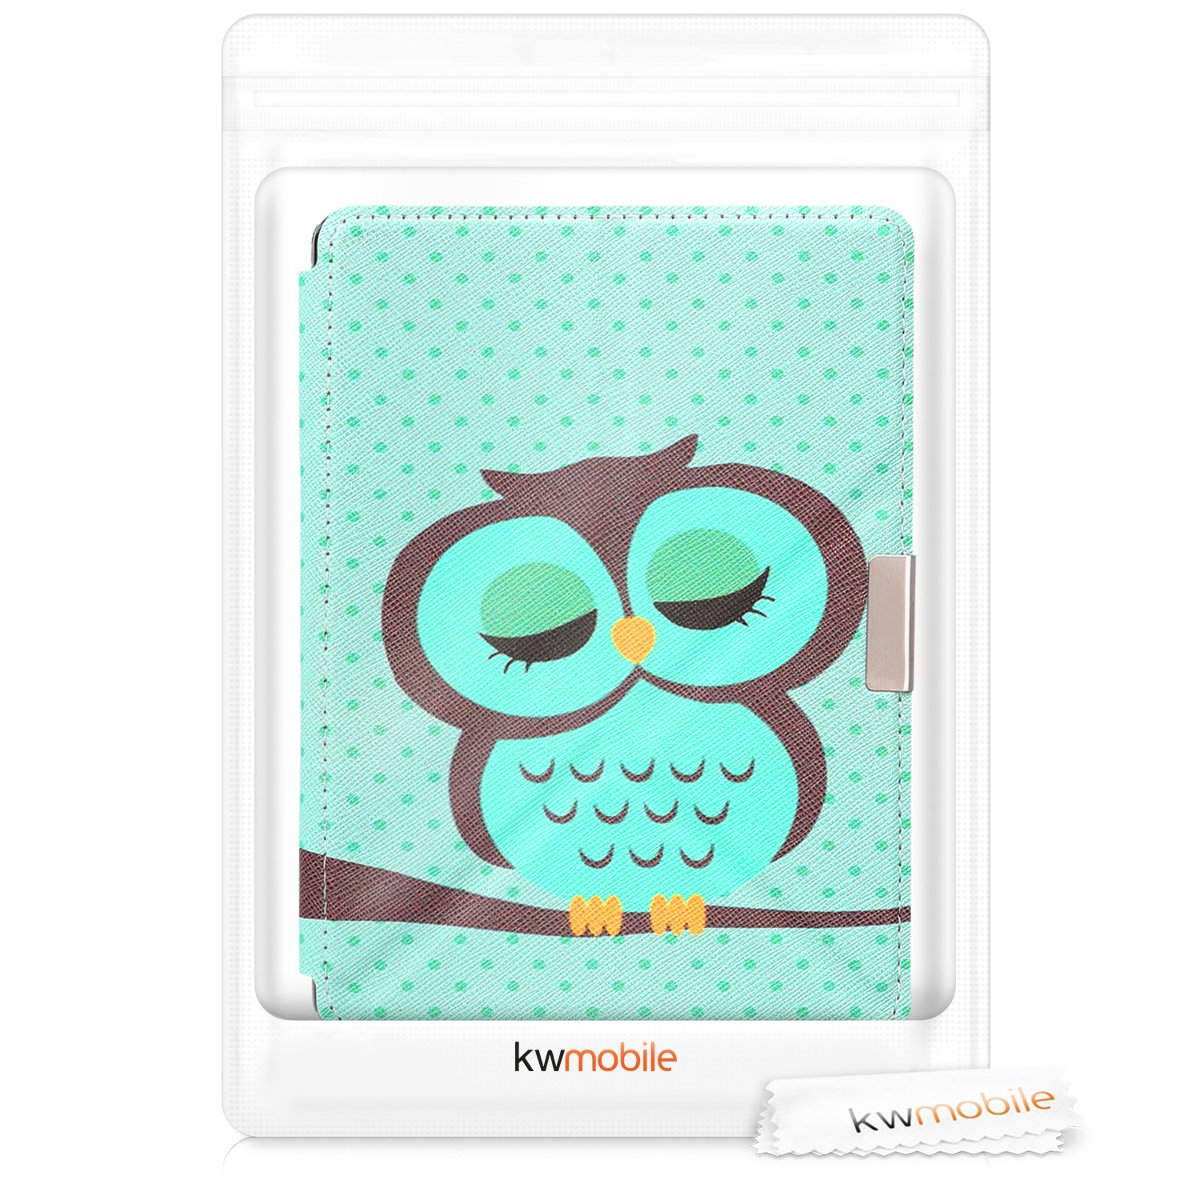 kwmobile Cover case for Kobo Aura Edition 2 with stand - Ultra slim case made of synthetic leather Sleeping Owl in turquoise brown mint by kwmobile (Image #8)